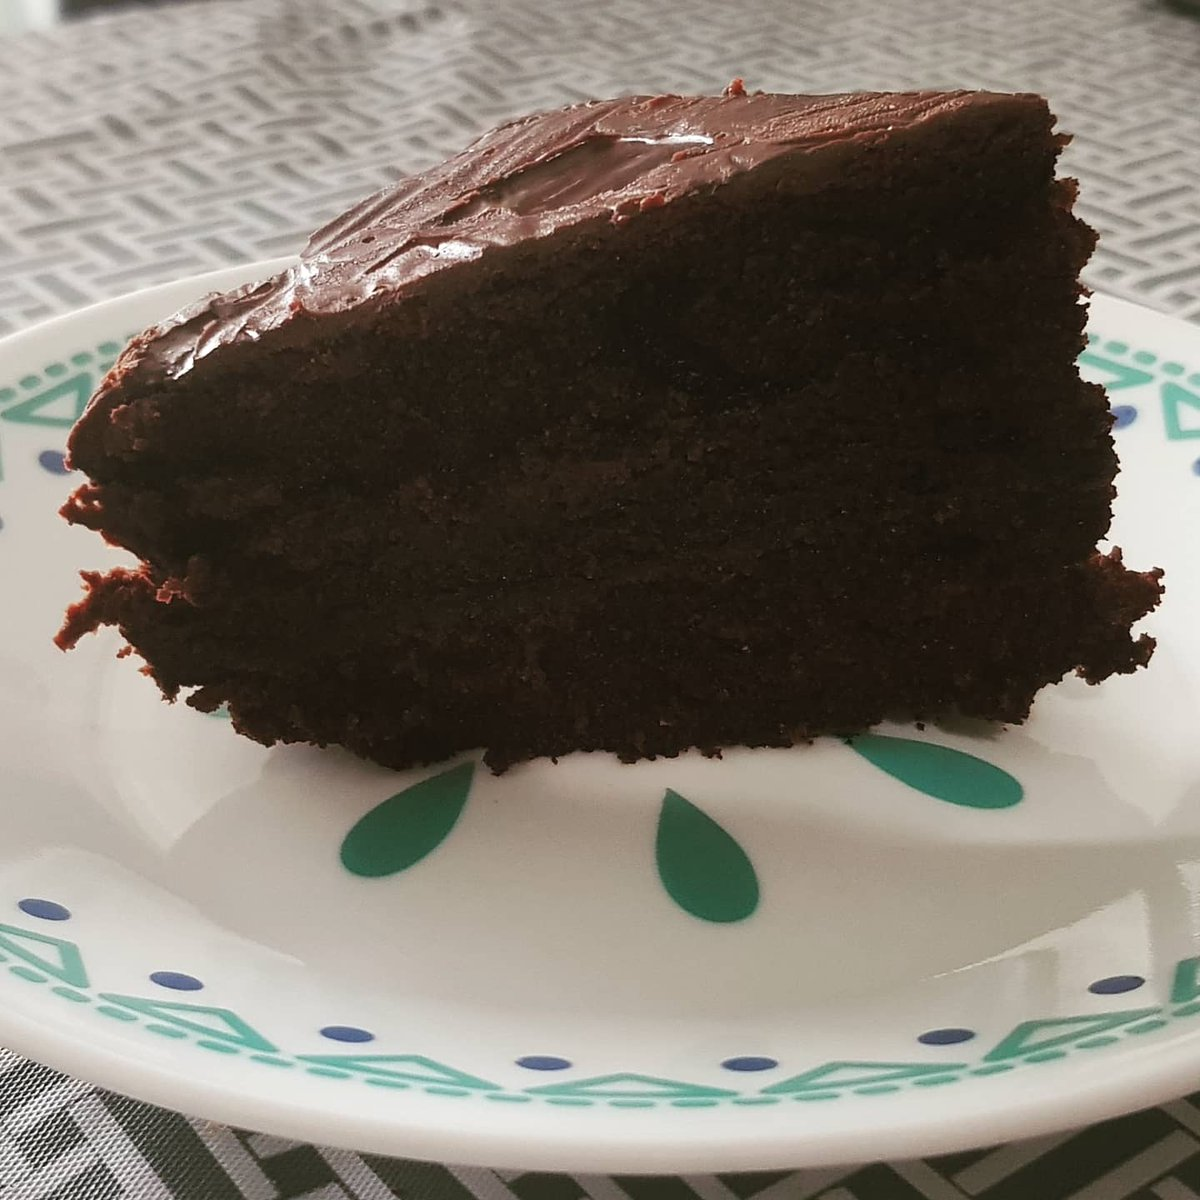 Tried the @foodcast moist chocolate cake recipe and it turned out super moist and delicious. Love! #foodie #chocolate #chocolovers #chocolatecake #fudgecake #chocolatefudgecake #brownie #homemade #baking #canada #uae #pakistan https://t.co/cZJZS6KEme